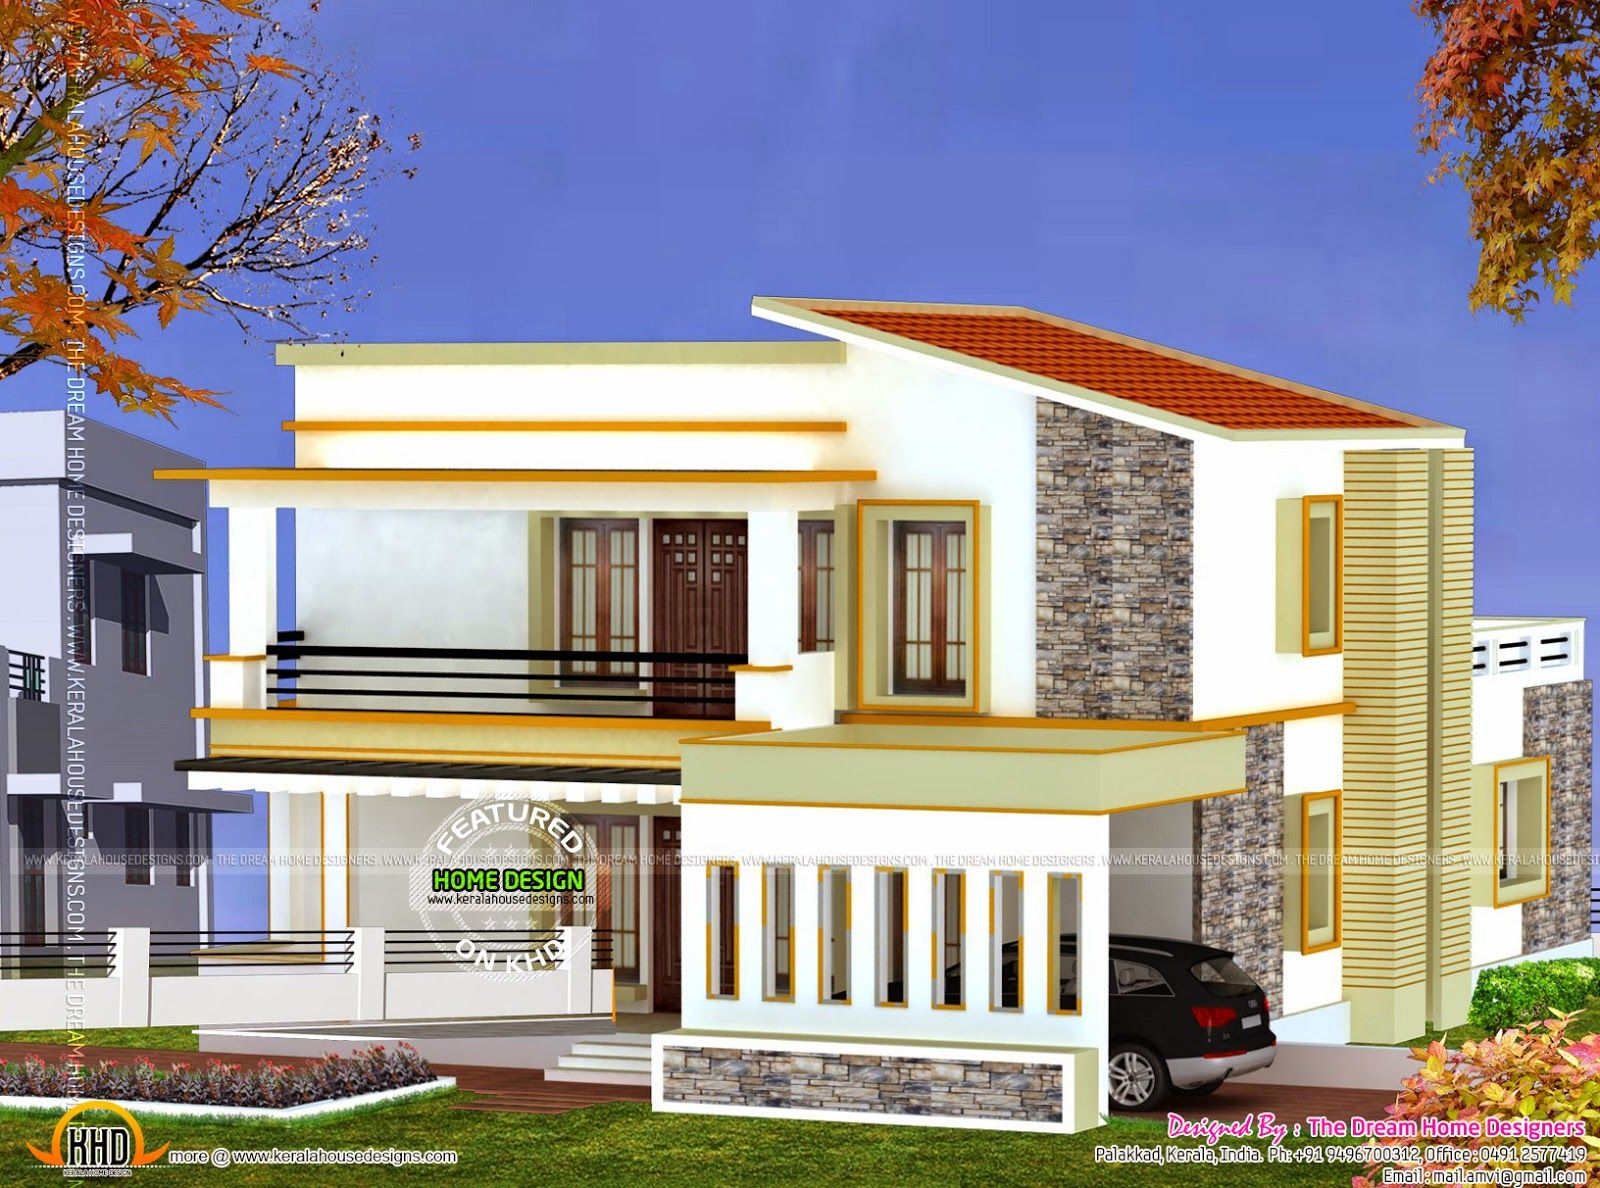 3d Dream Home Designer.